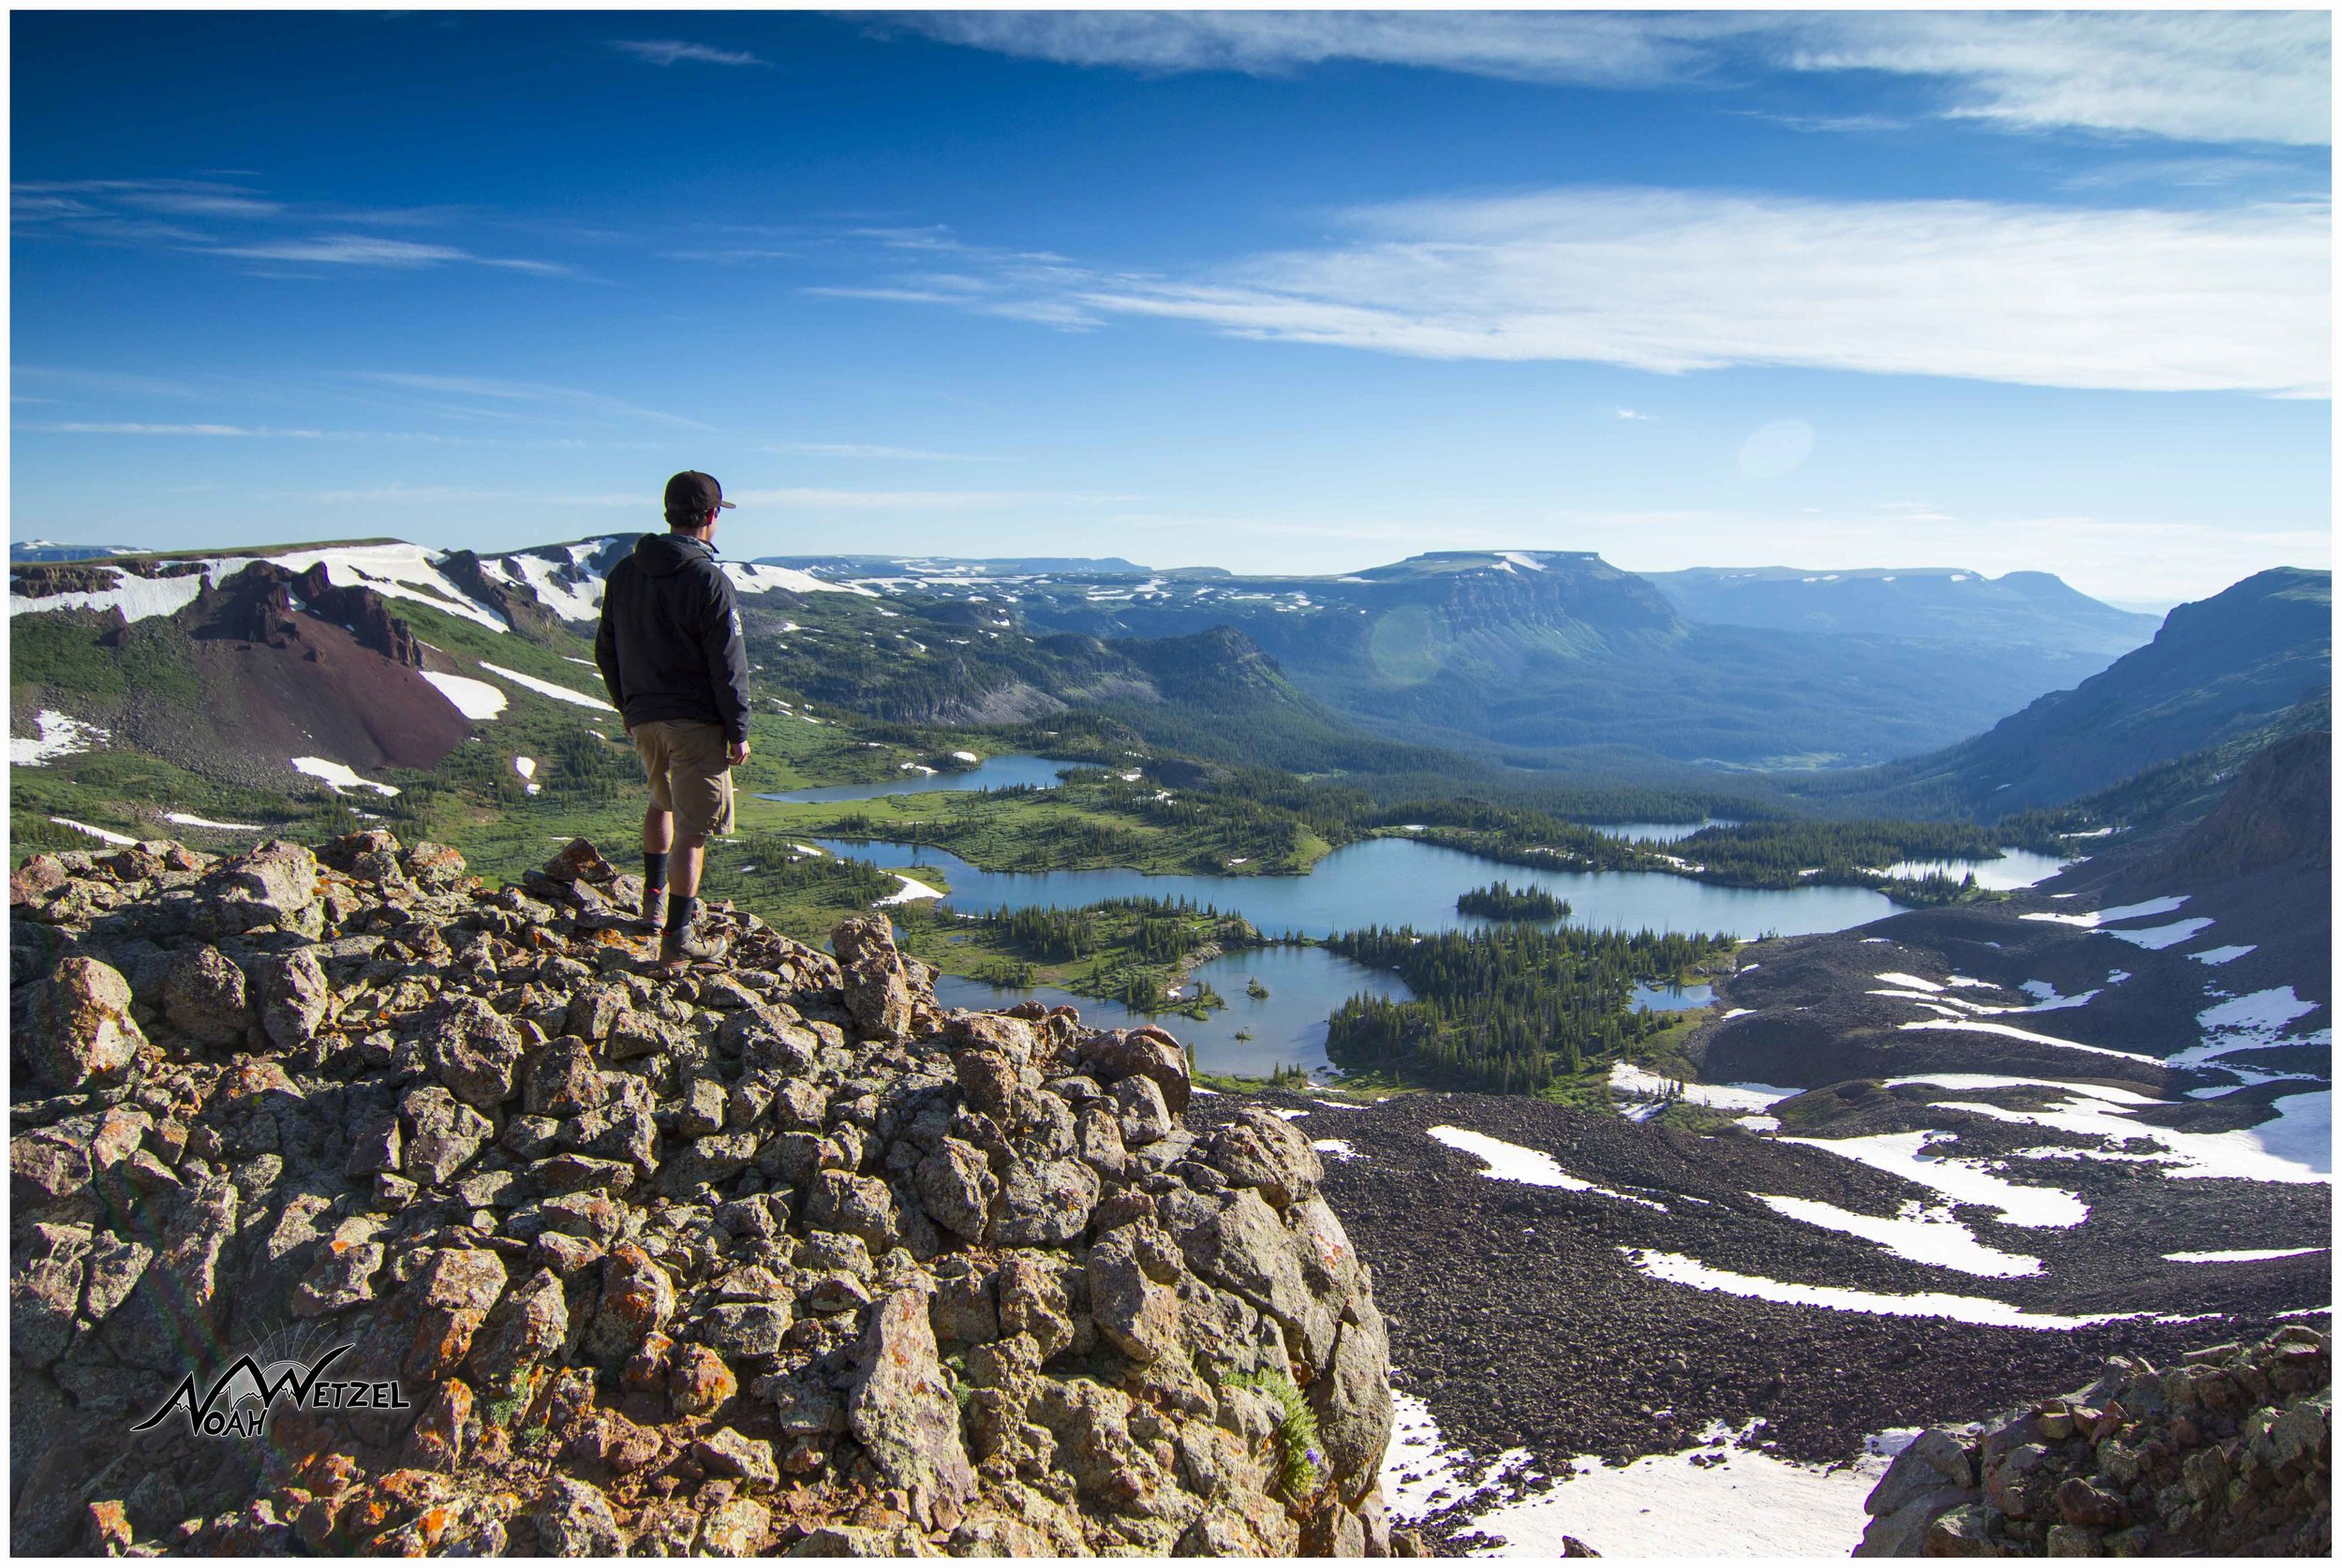 Self Portrait overlooking Island Lake in the Flat Tops Wilderness. Colorado